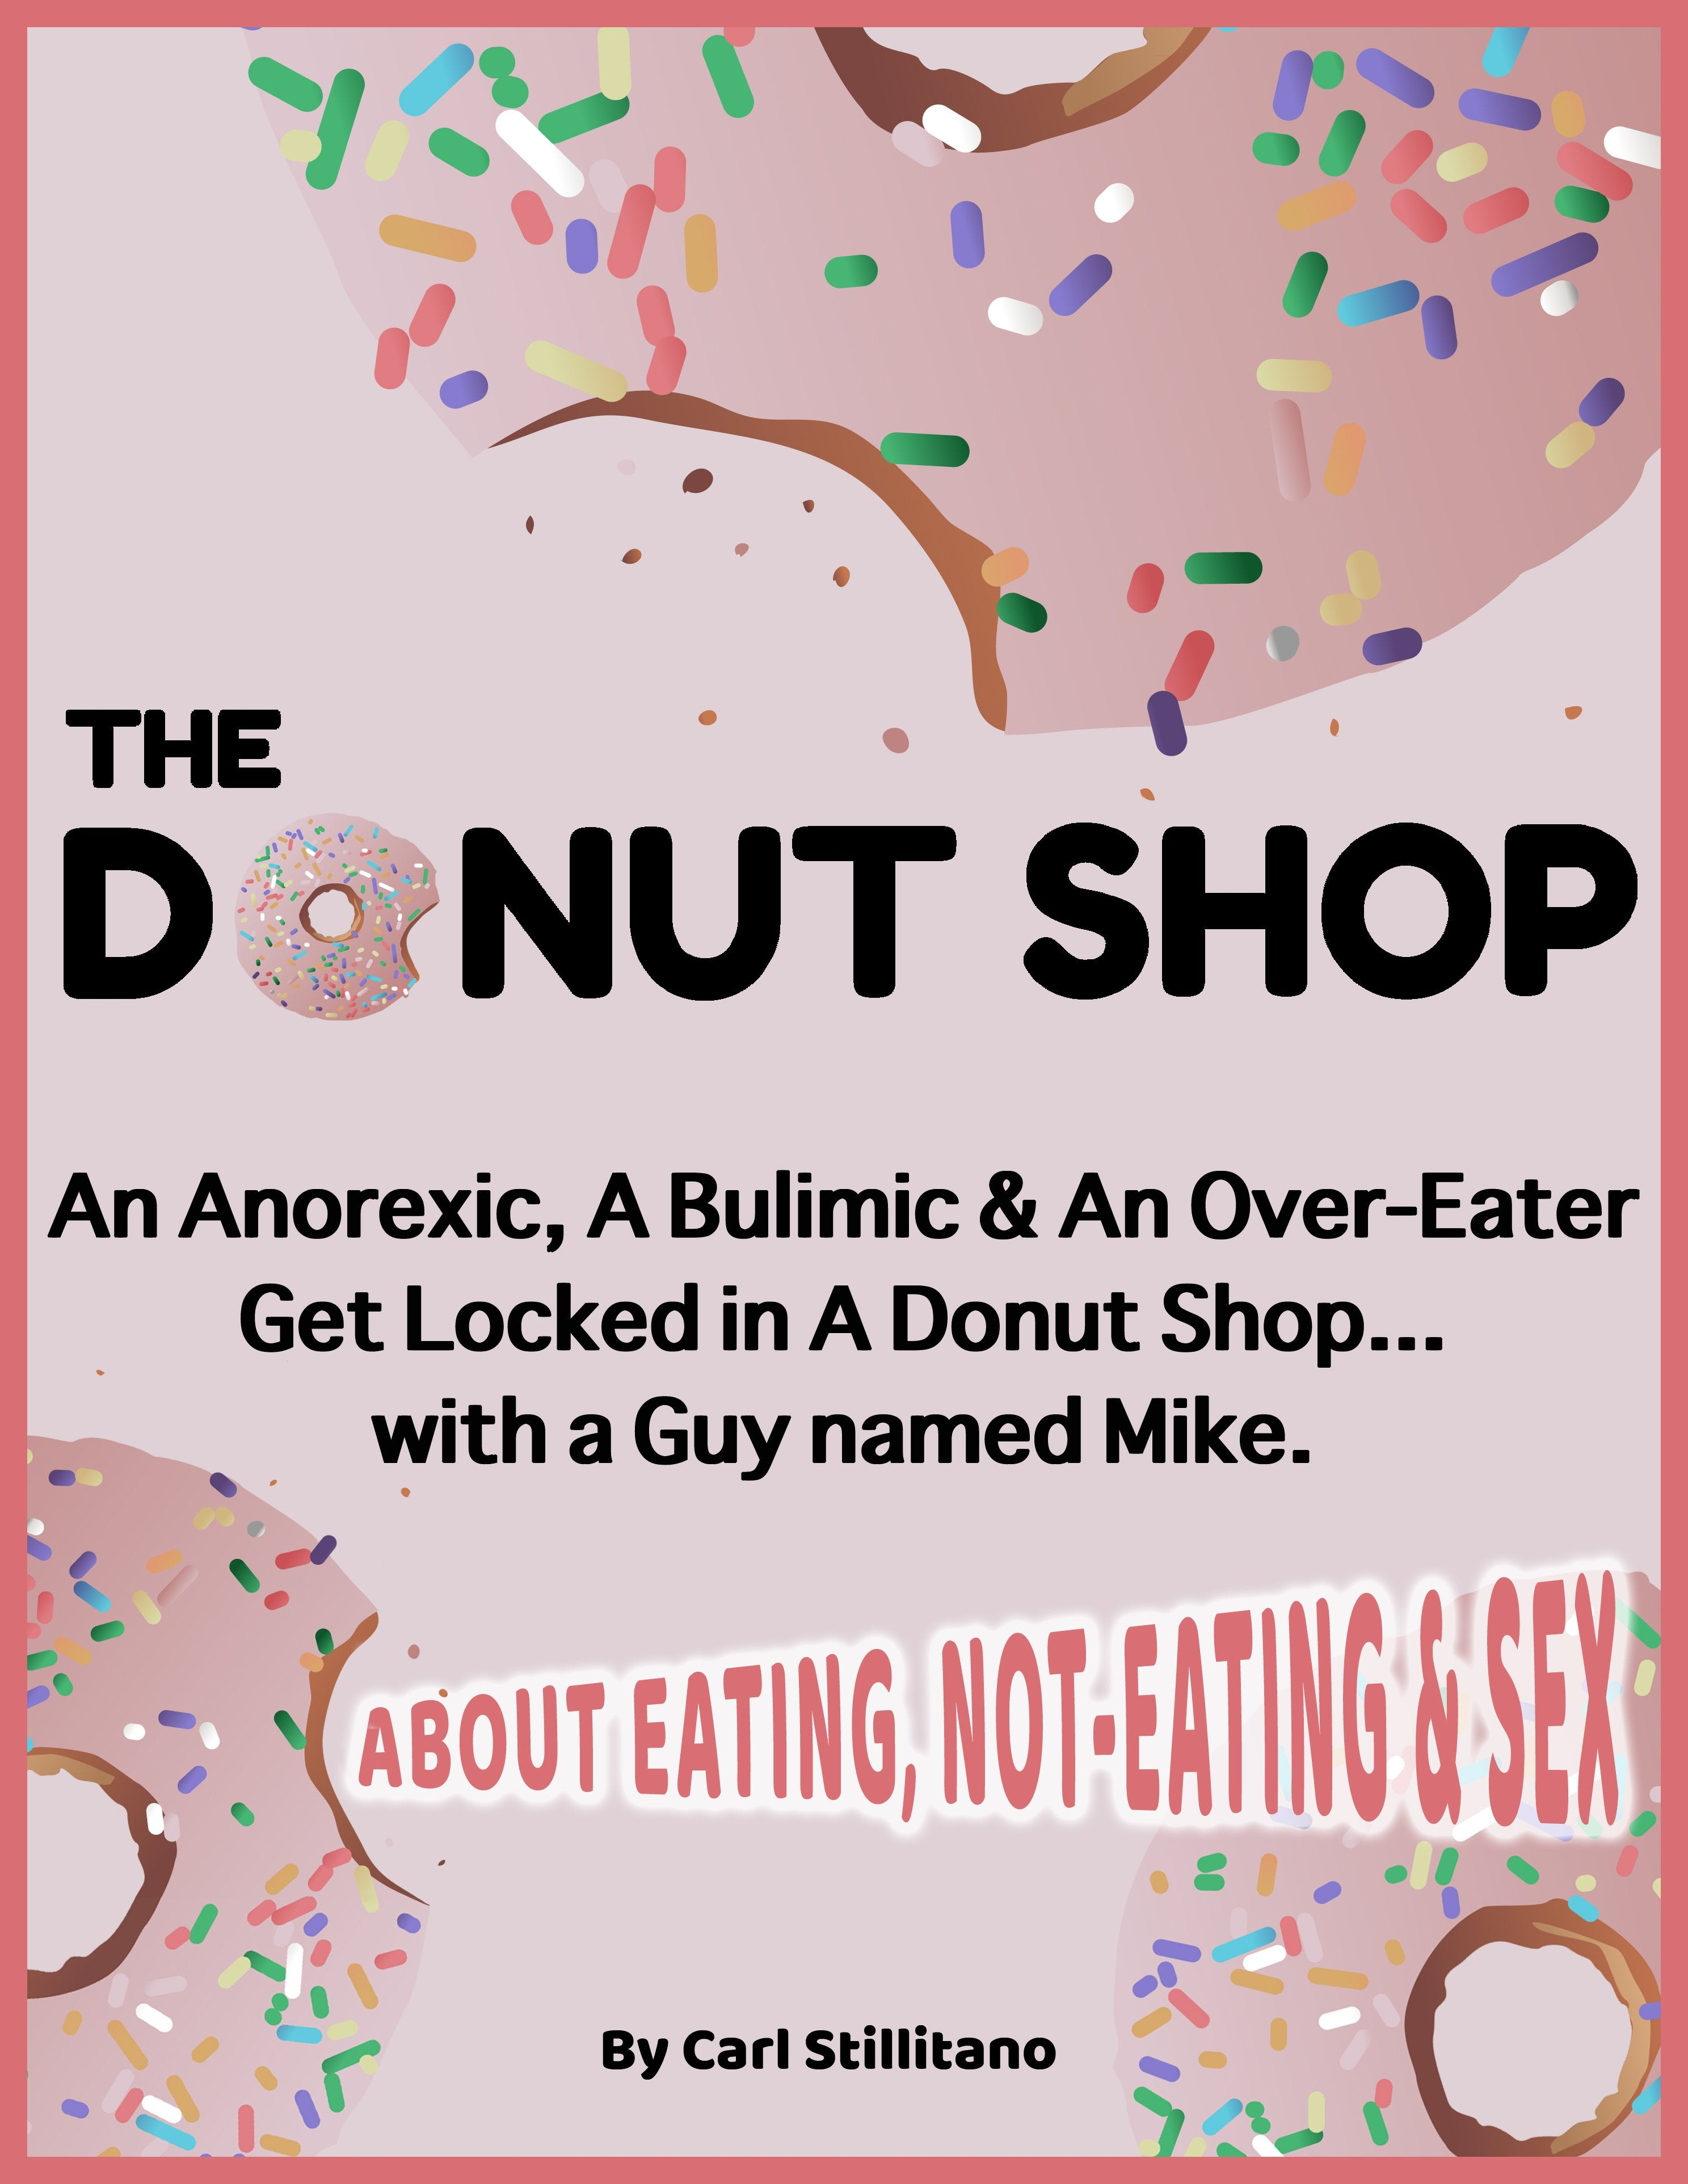 The Donut Shop Transformative Play